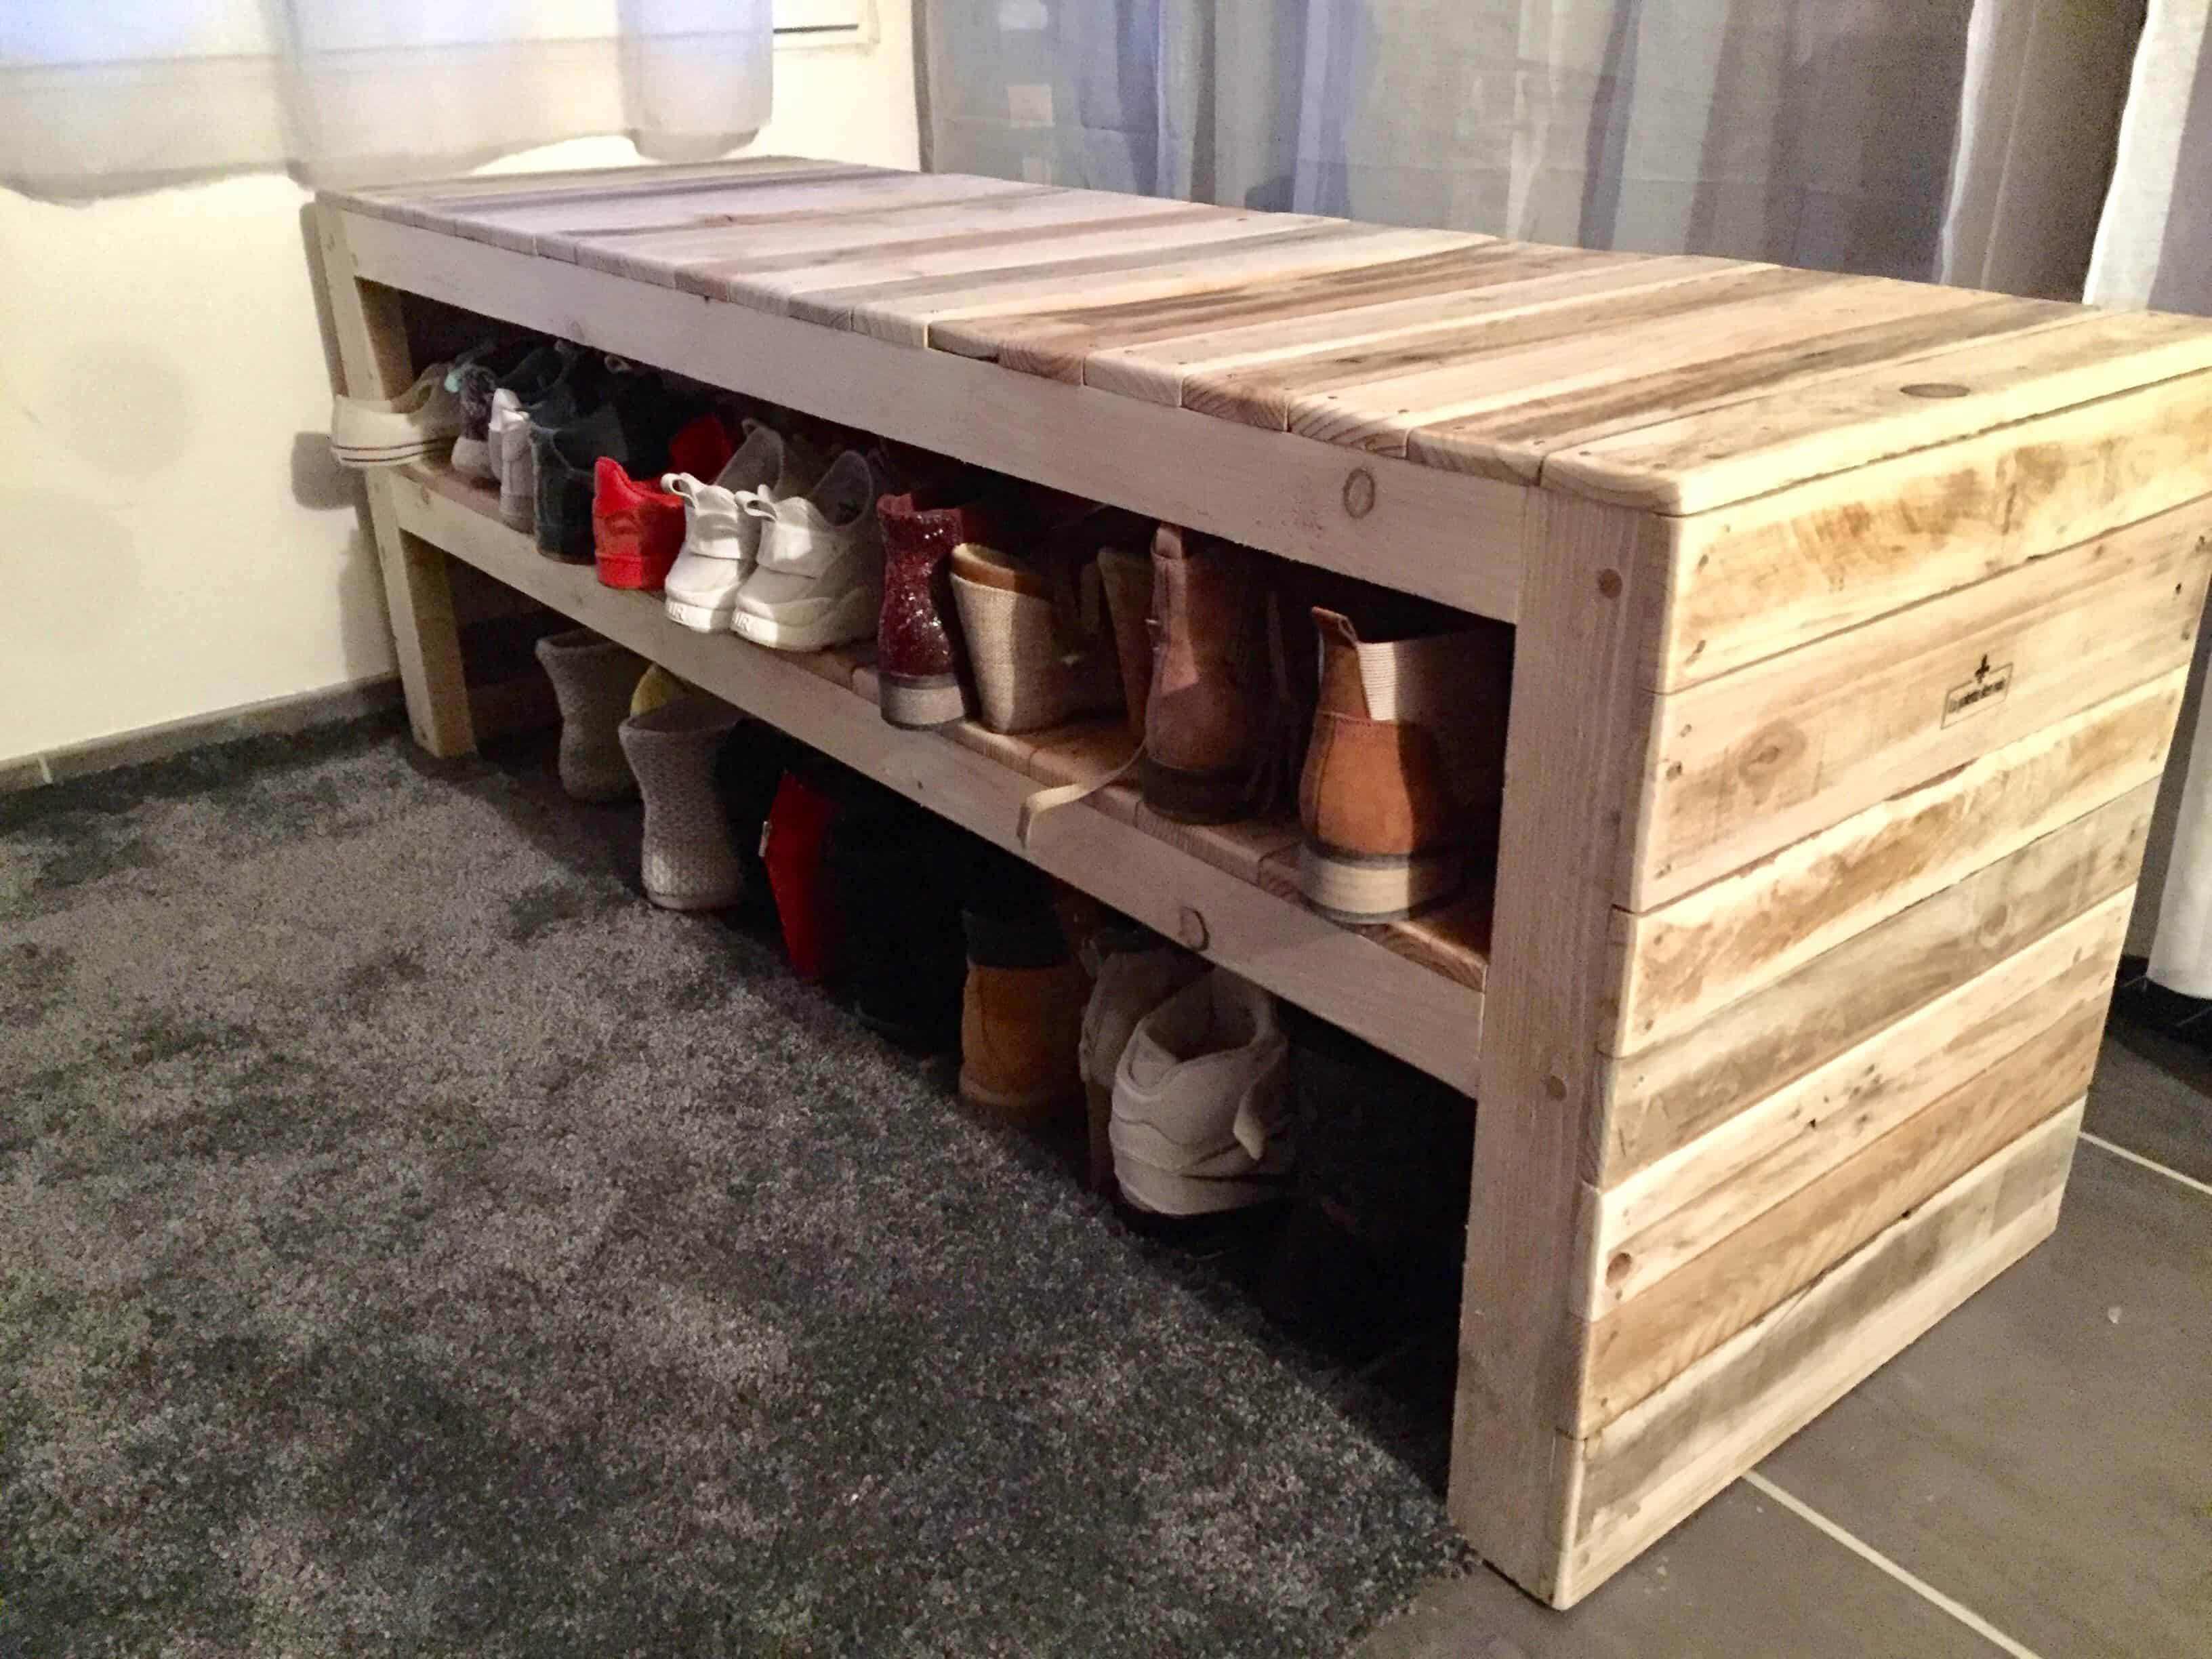 This Pallet Bench Has Two Shoe Storage Shelves! • Pallet ...